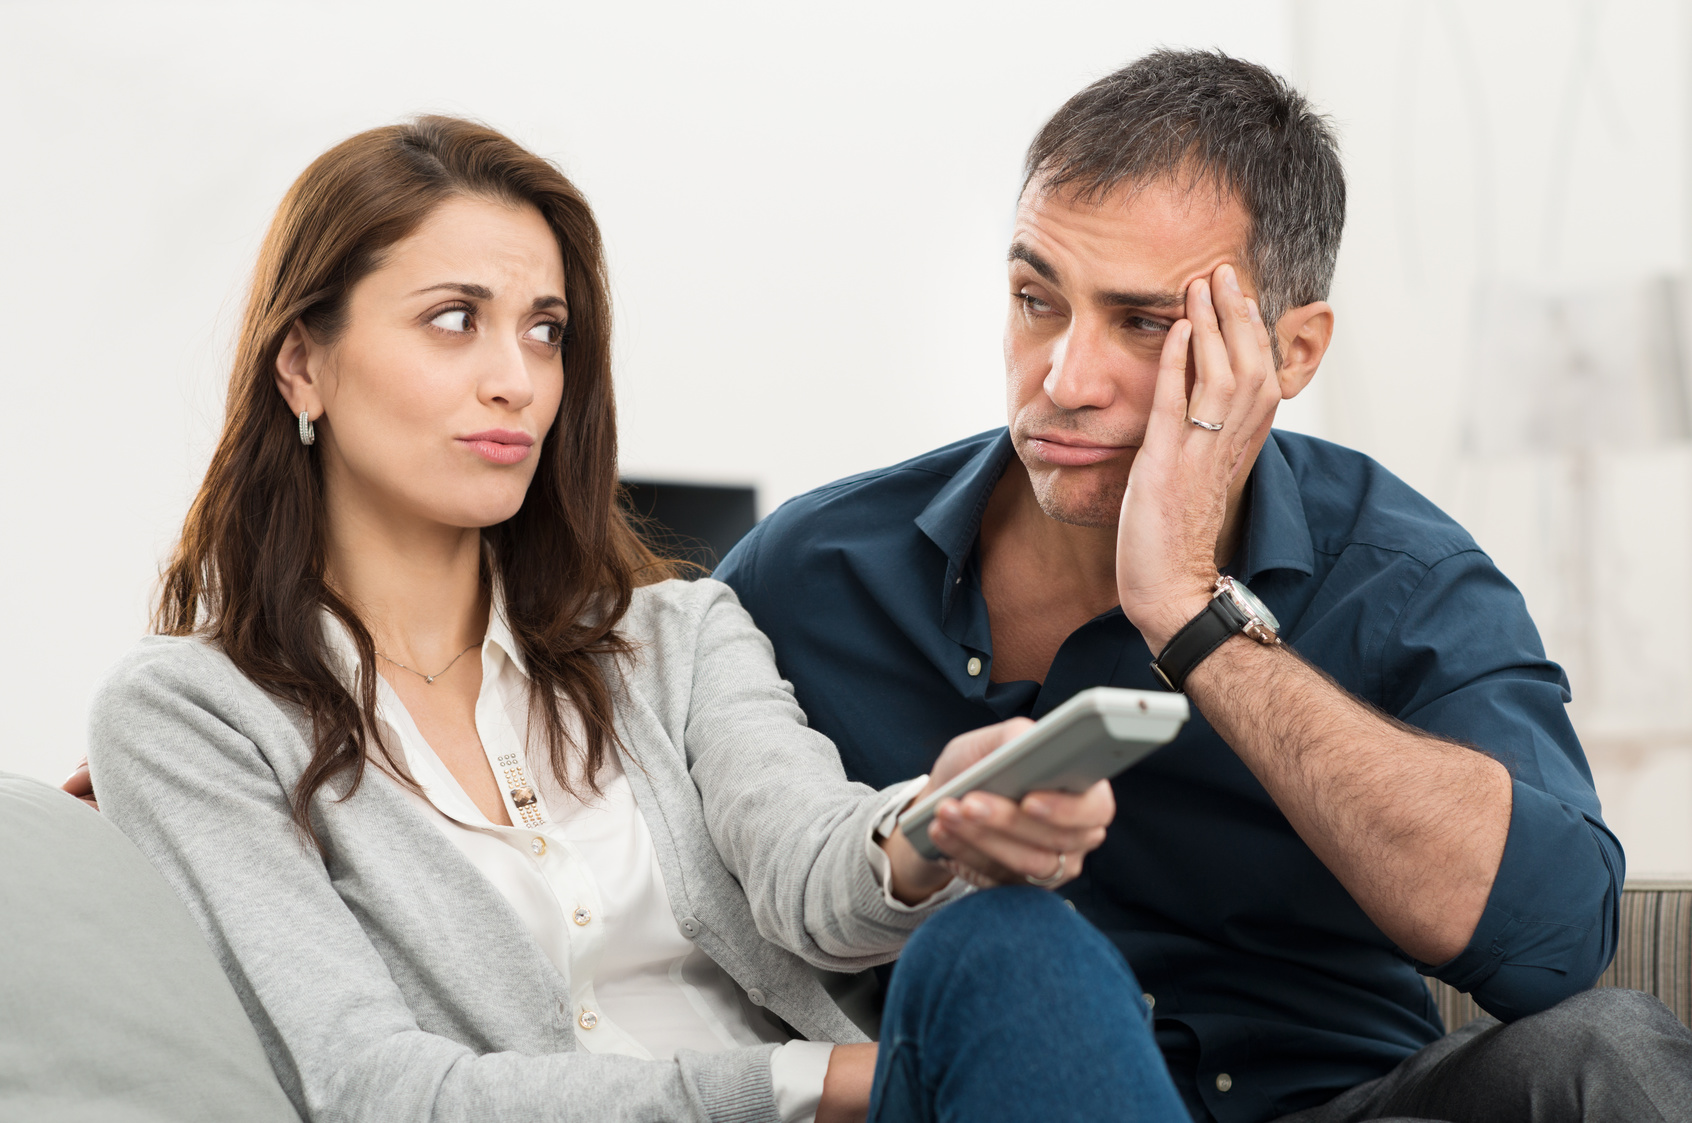 Frustrated Couple Looking At Each Other While Watching Television Sitting On Couch